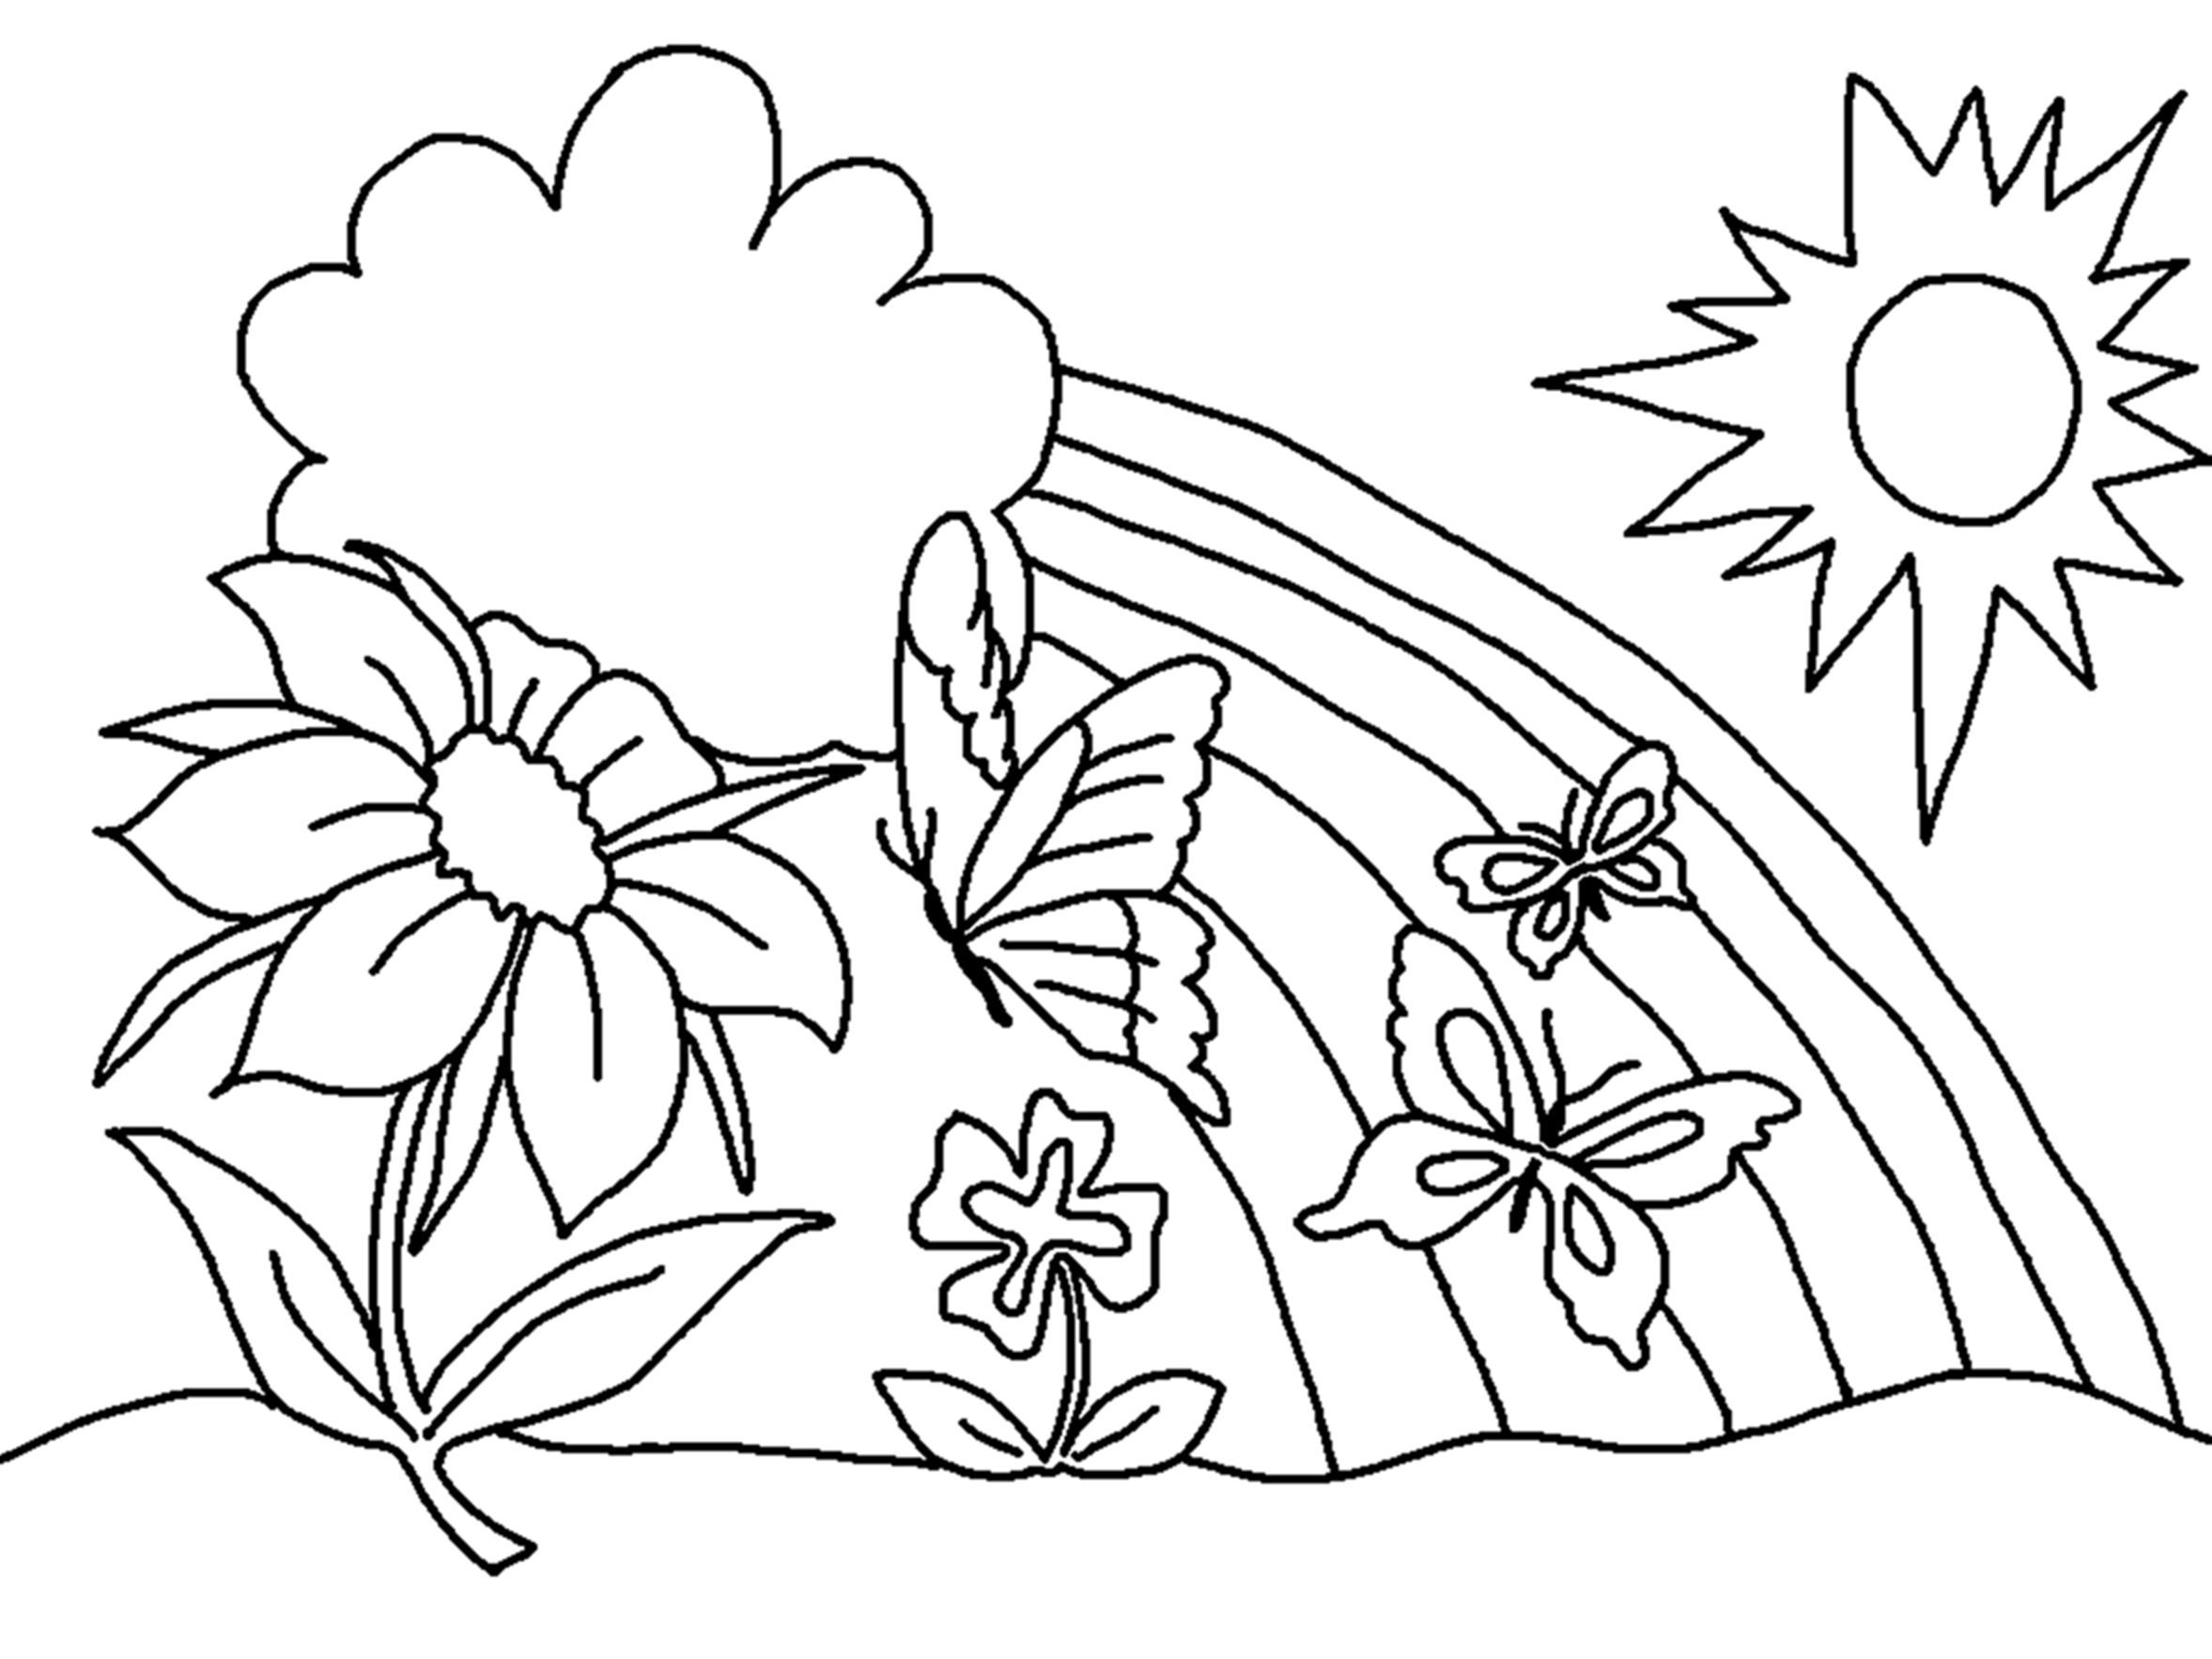 download free flower coloring page - Colouring Pages Print